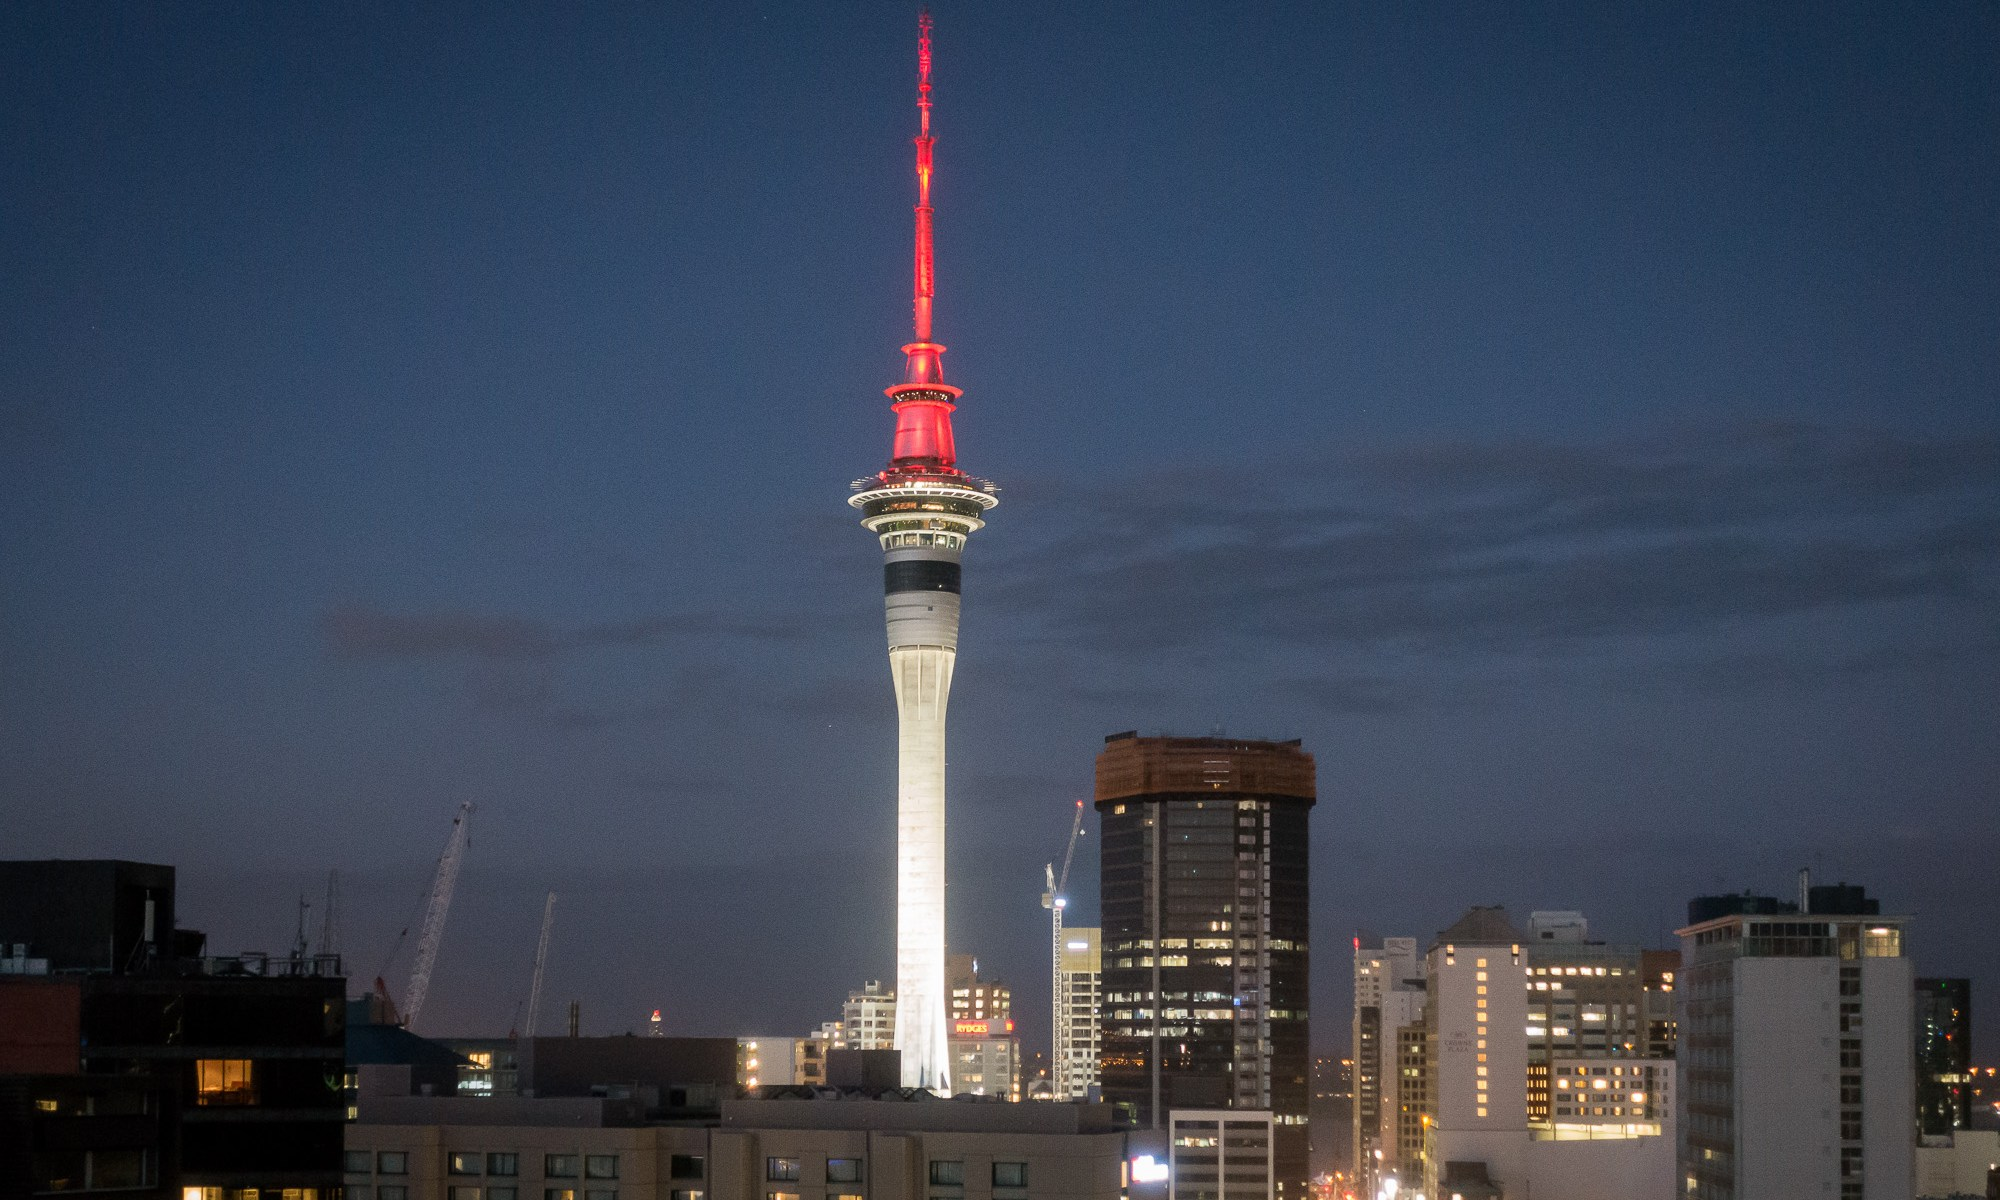 Auckland Skytower at night